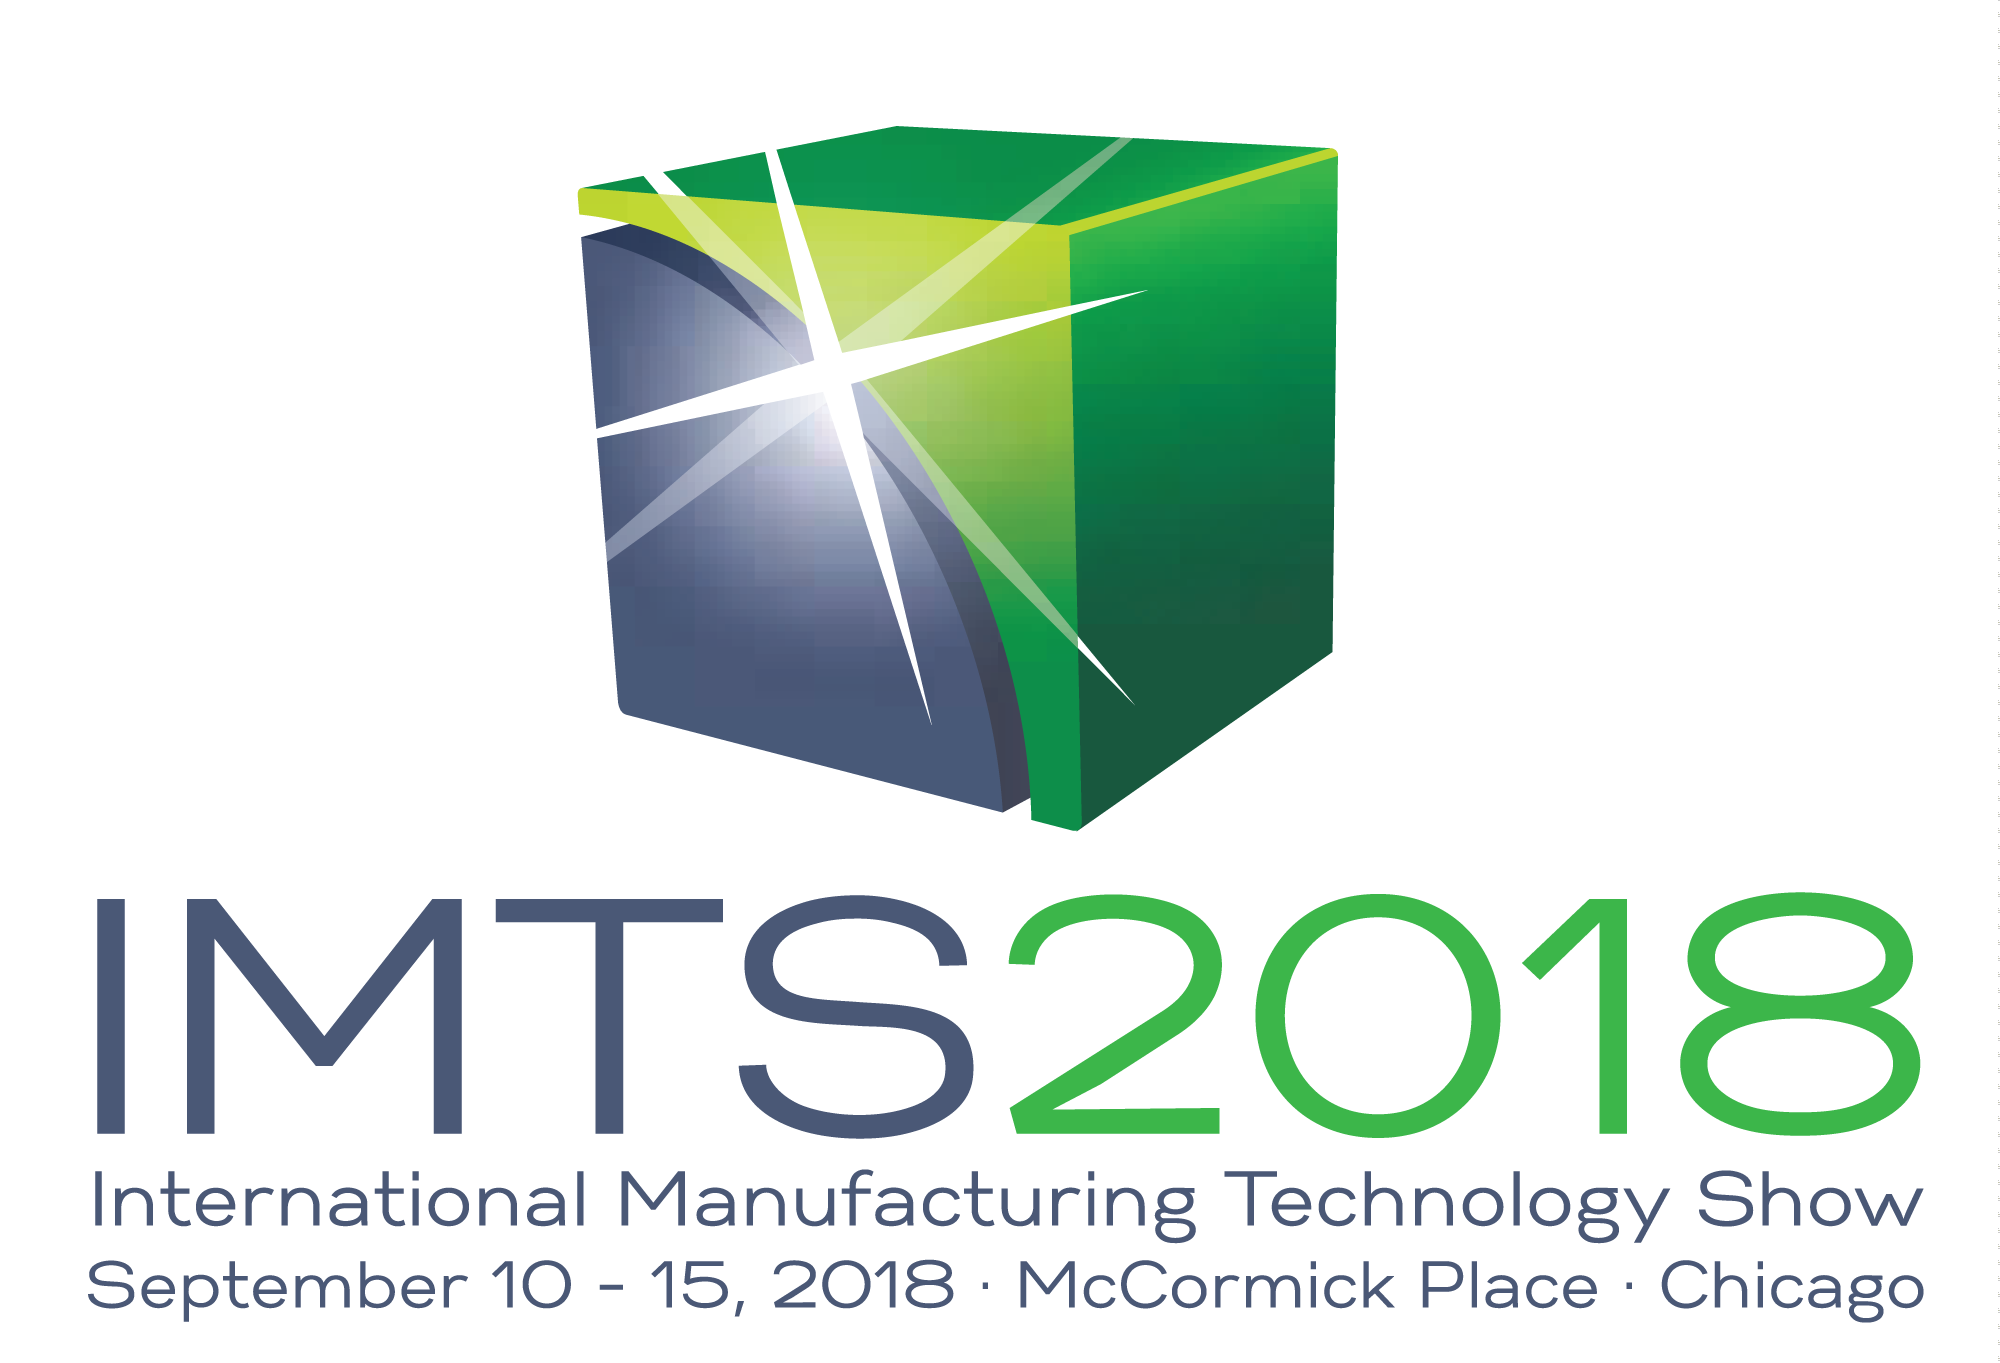 ITS Exhibit at IMTS 2018